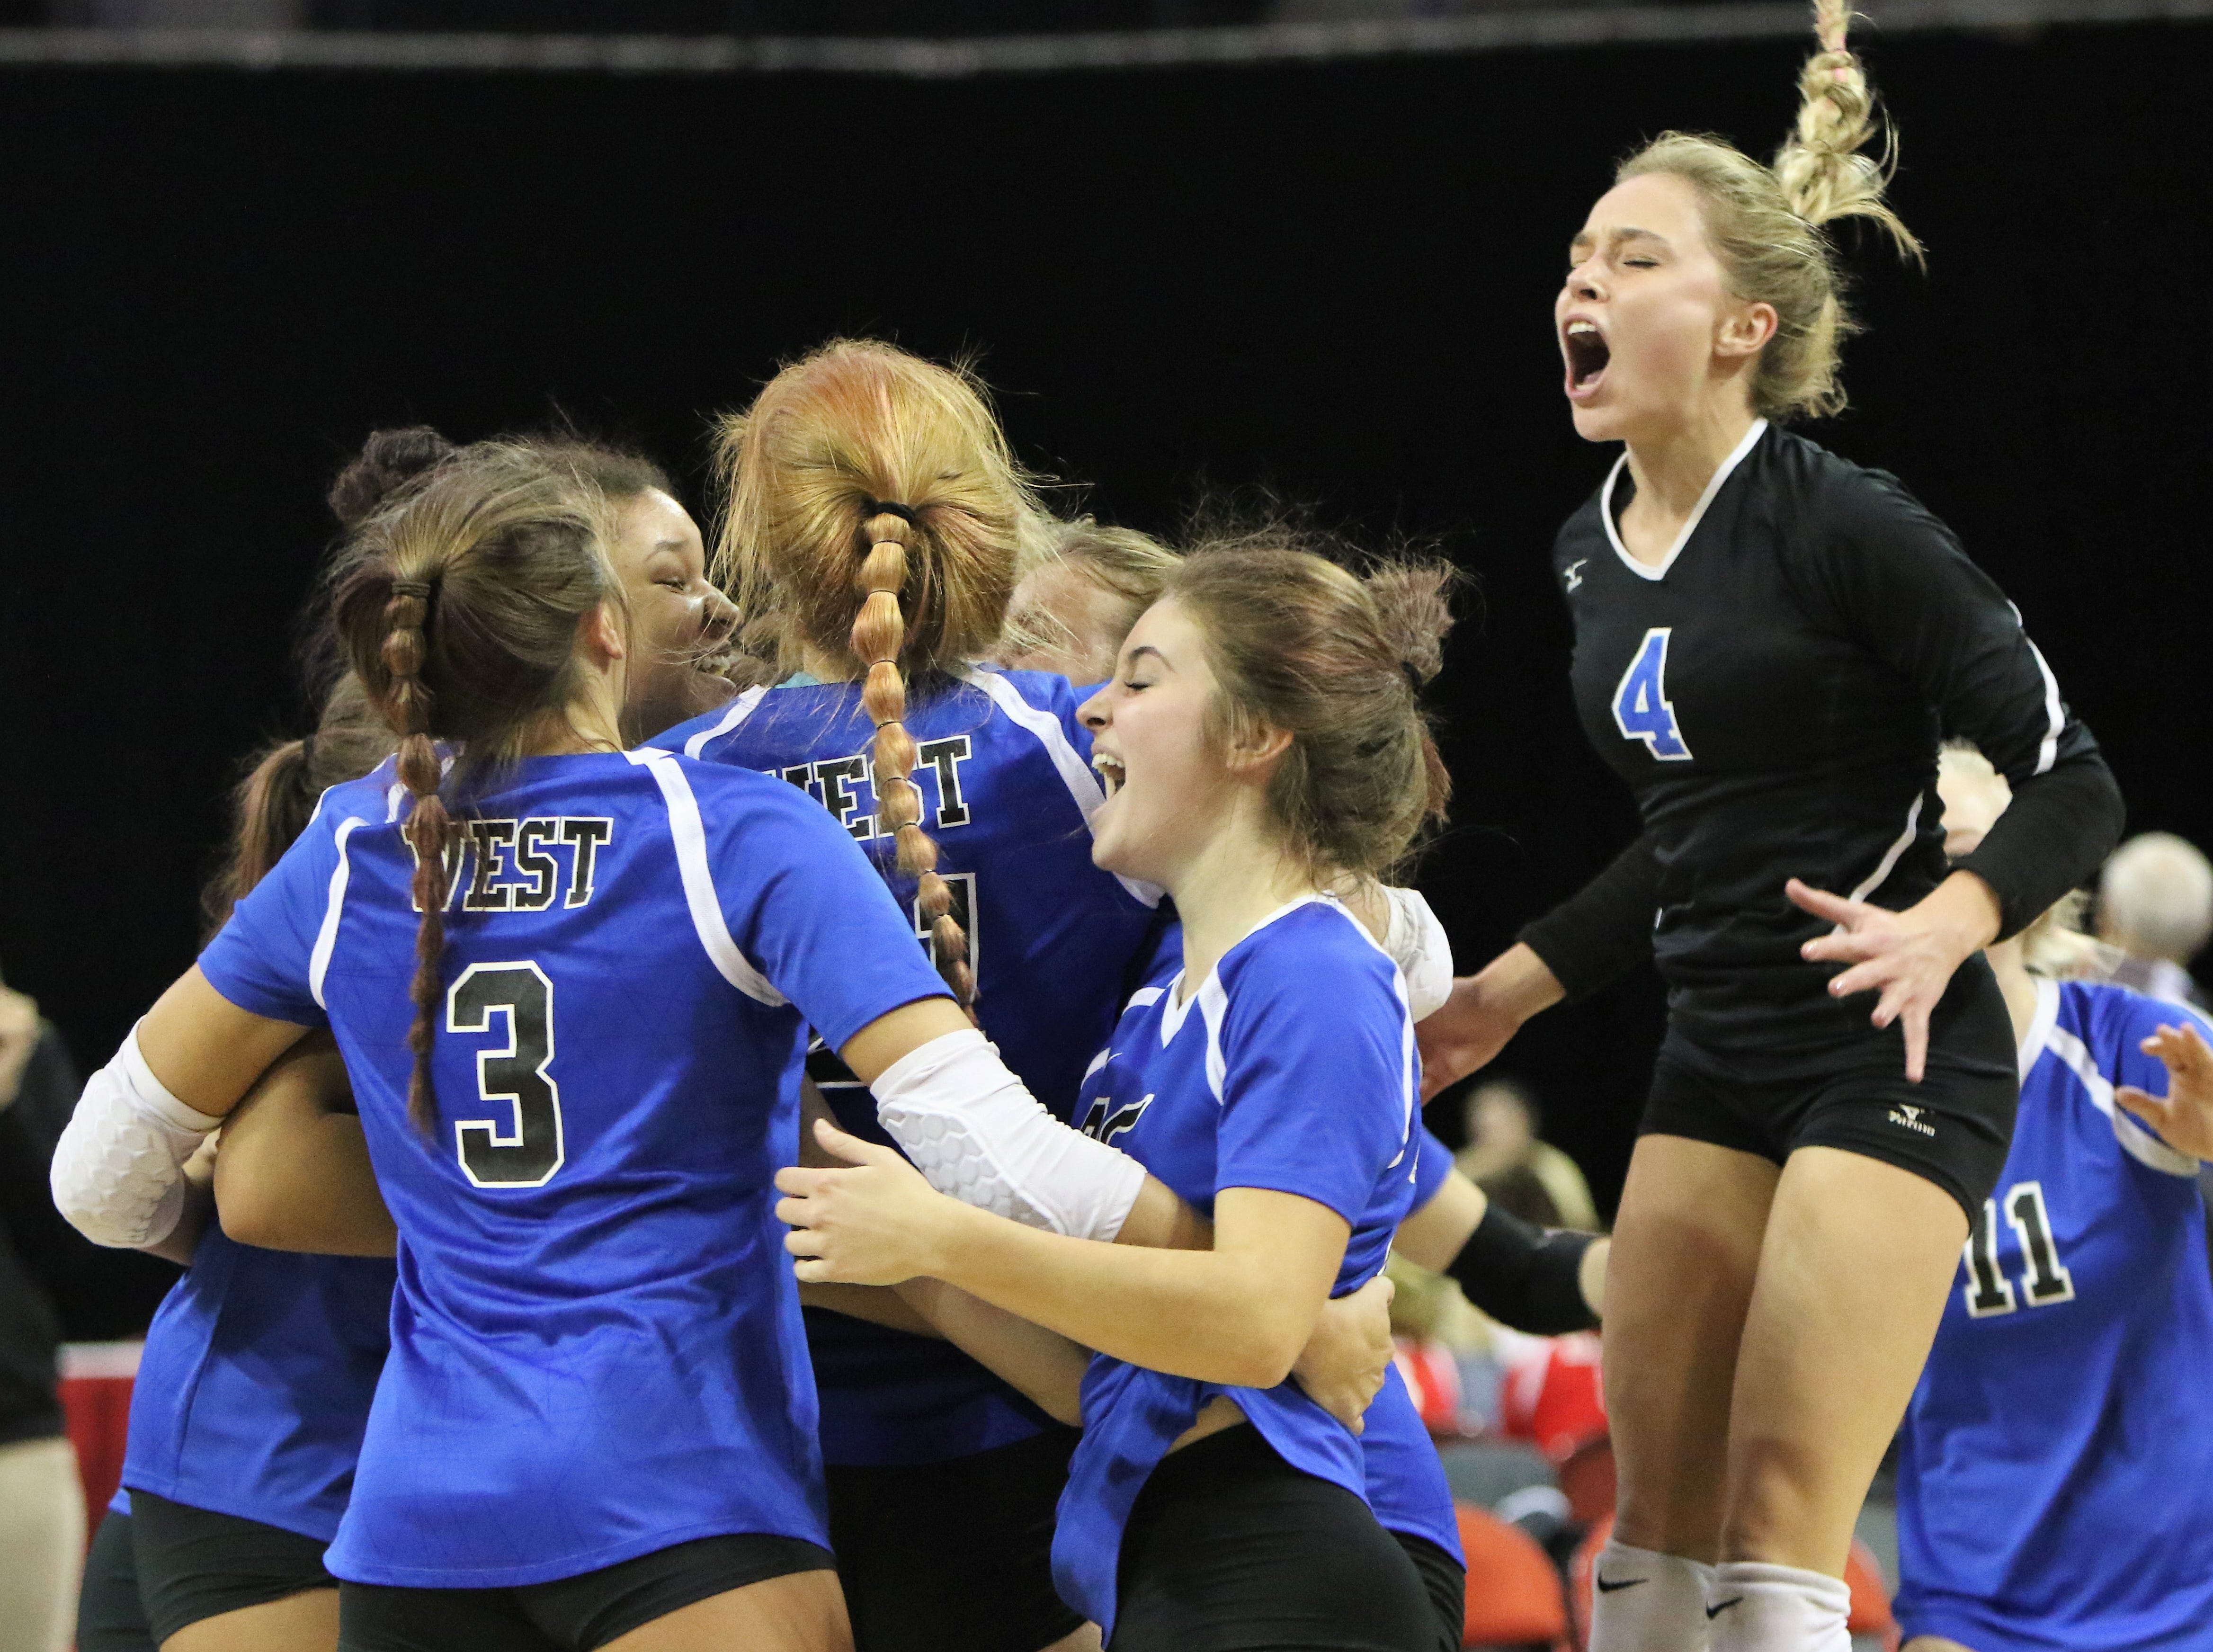 Waukesha West sophomore Anna Holland (4) jumps for joy as the Wolverines celebrate their quarterfinal win over Arrowhead at the WIAA state girls volleyball tournament on Thursday, Nov. 1.